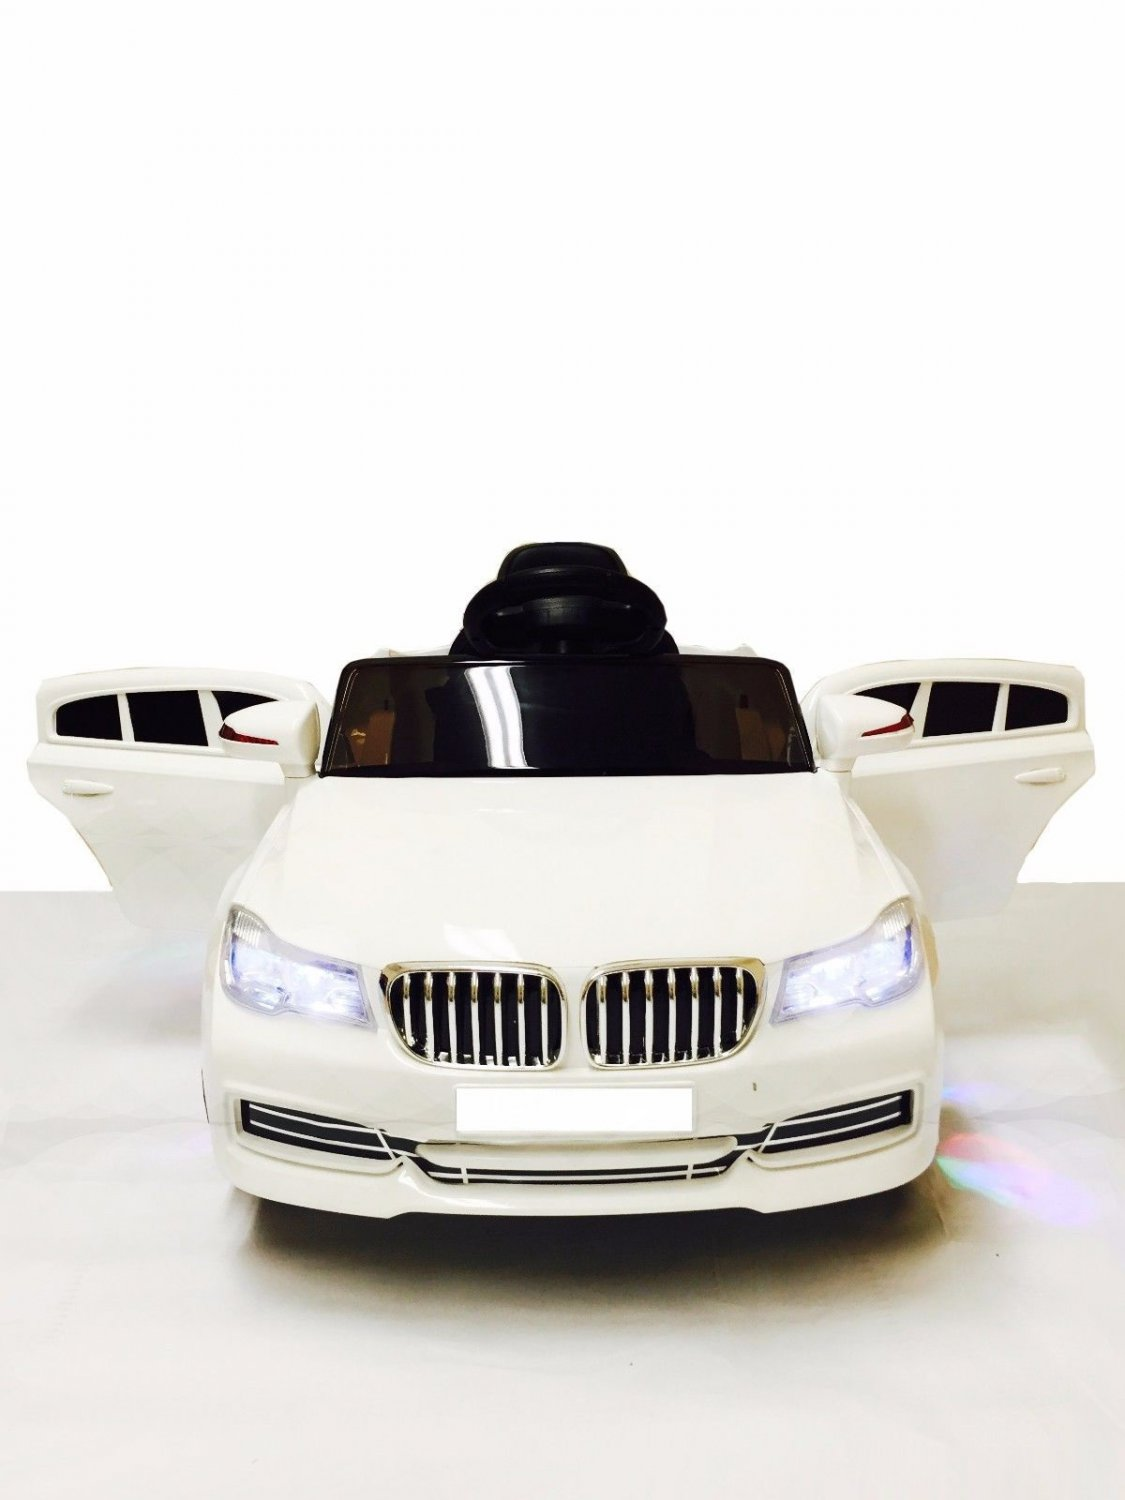 Ride On Car For Kids BMW with Remote Control   White